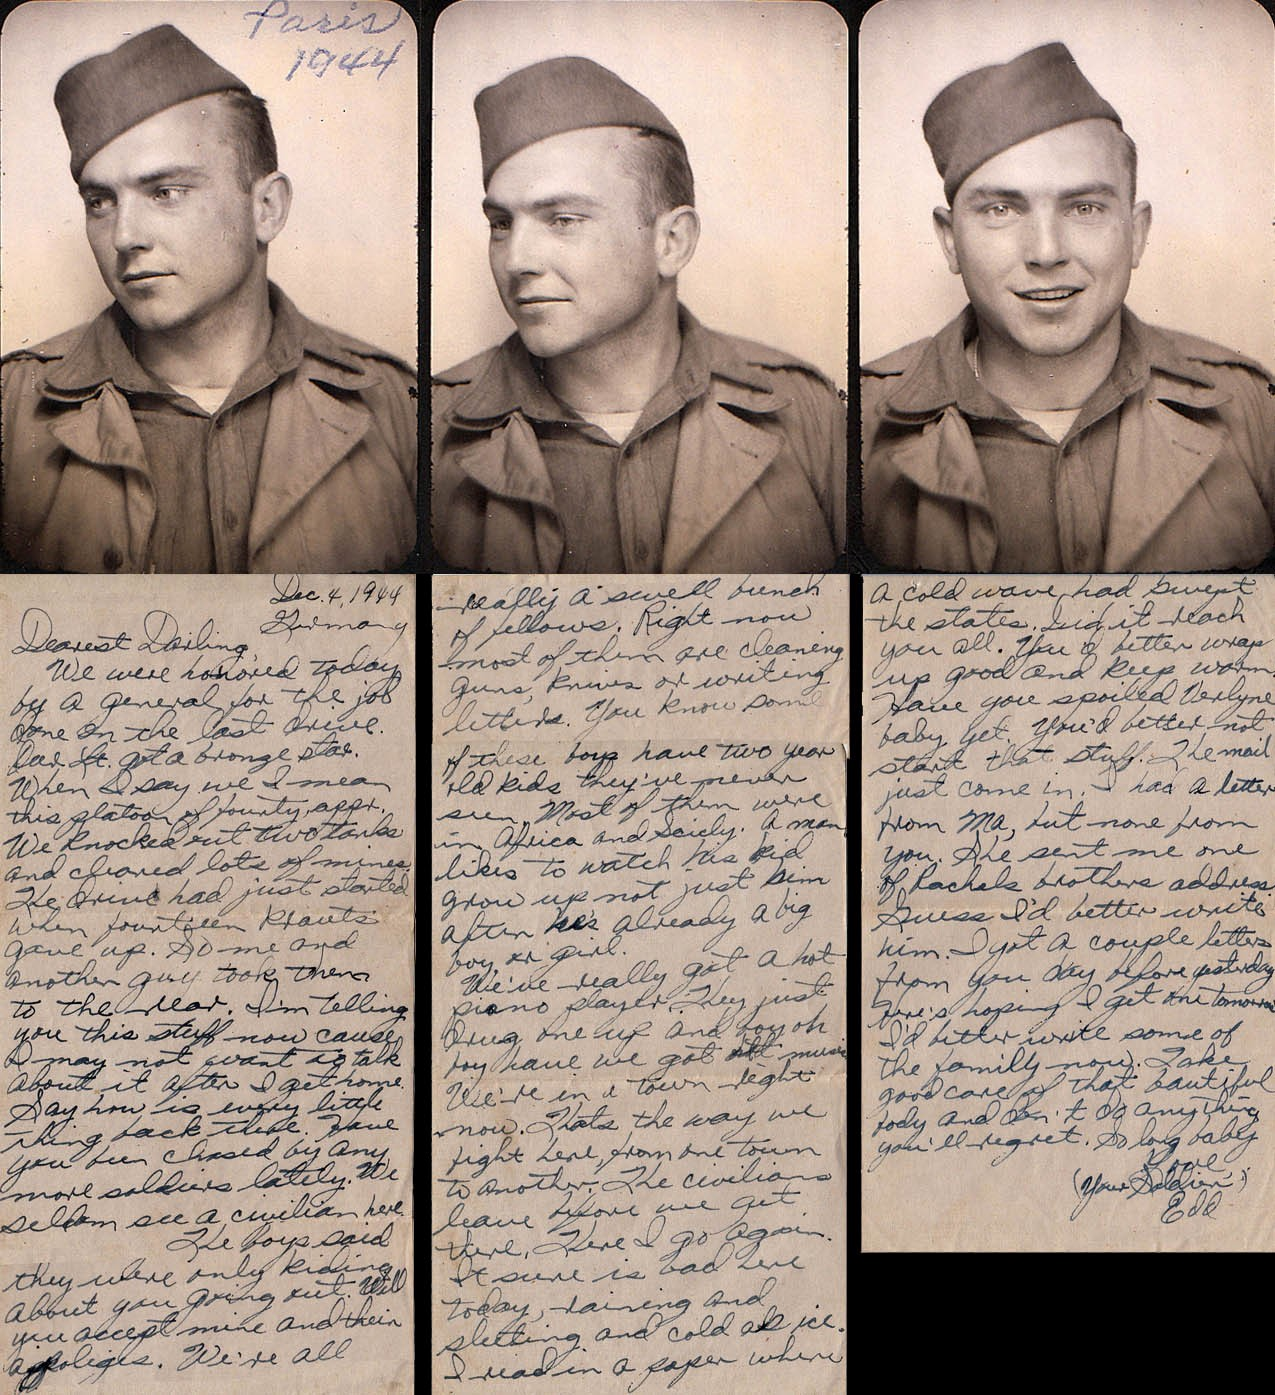 """Edd Hiett in Paris September 1944. The letter was written December 4, 1944 and it mentions a general honoring his platoon for knocking out 2 Tiger Tanks, clearing a lot of mines and him helping take 14 prisoners. He says """"I'm telling you this because I may not want to talk about it after I get home."""" (by MarkHiett, photo Courtesy Mark Hiett)"""